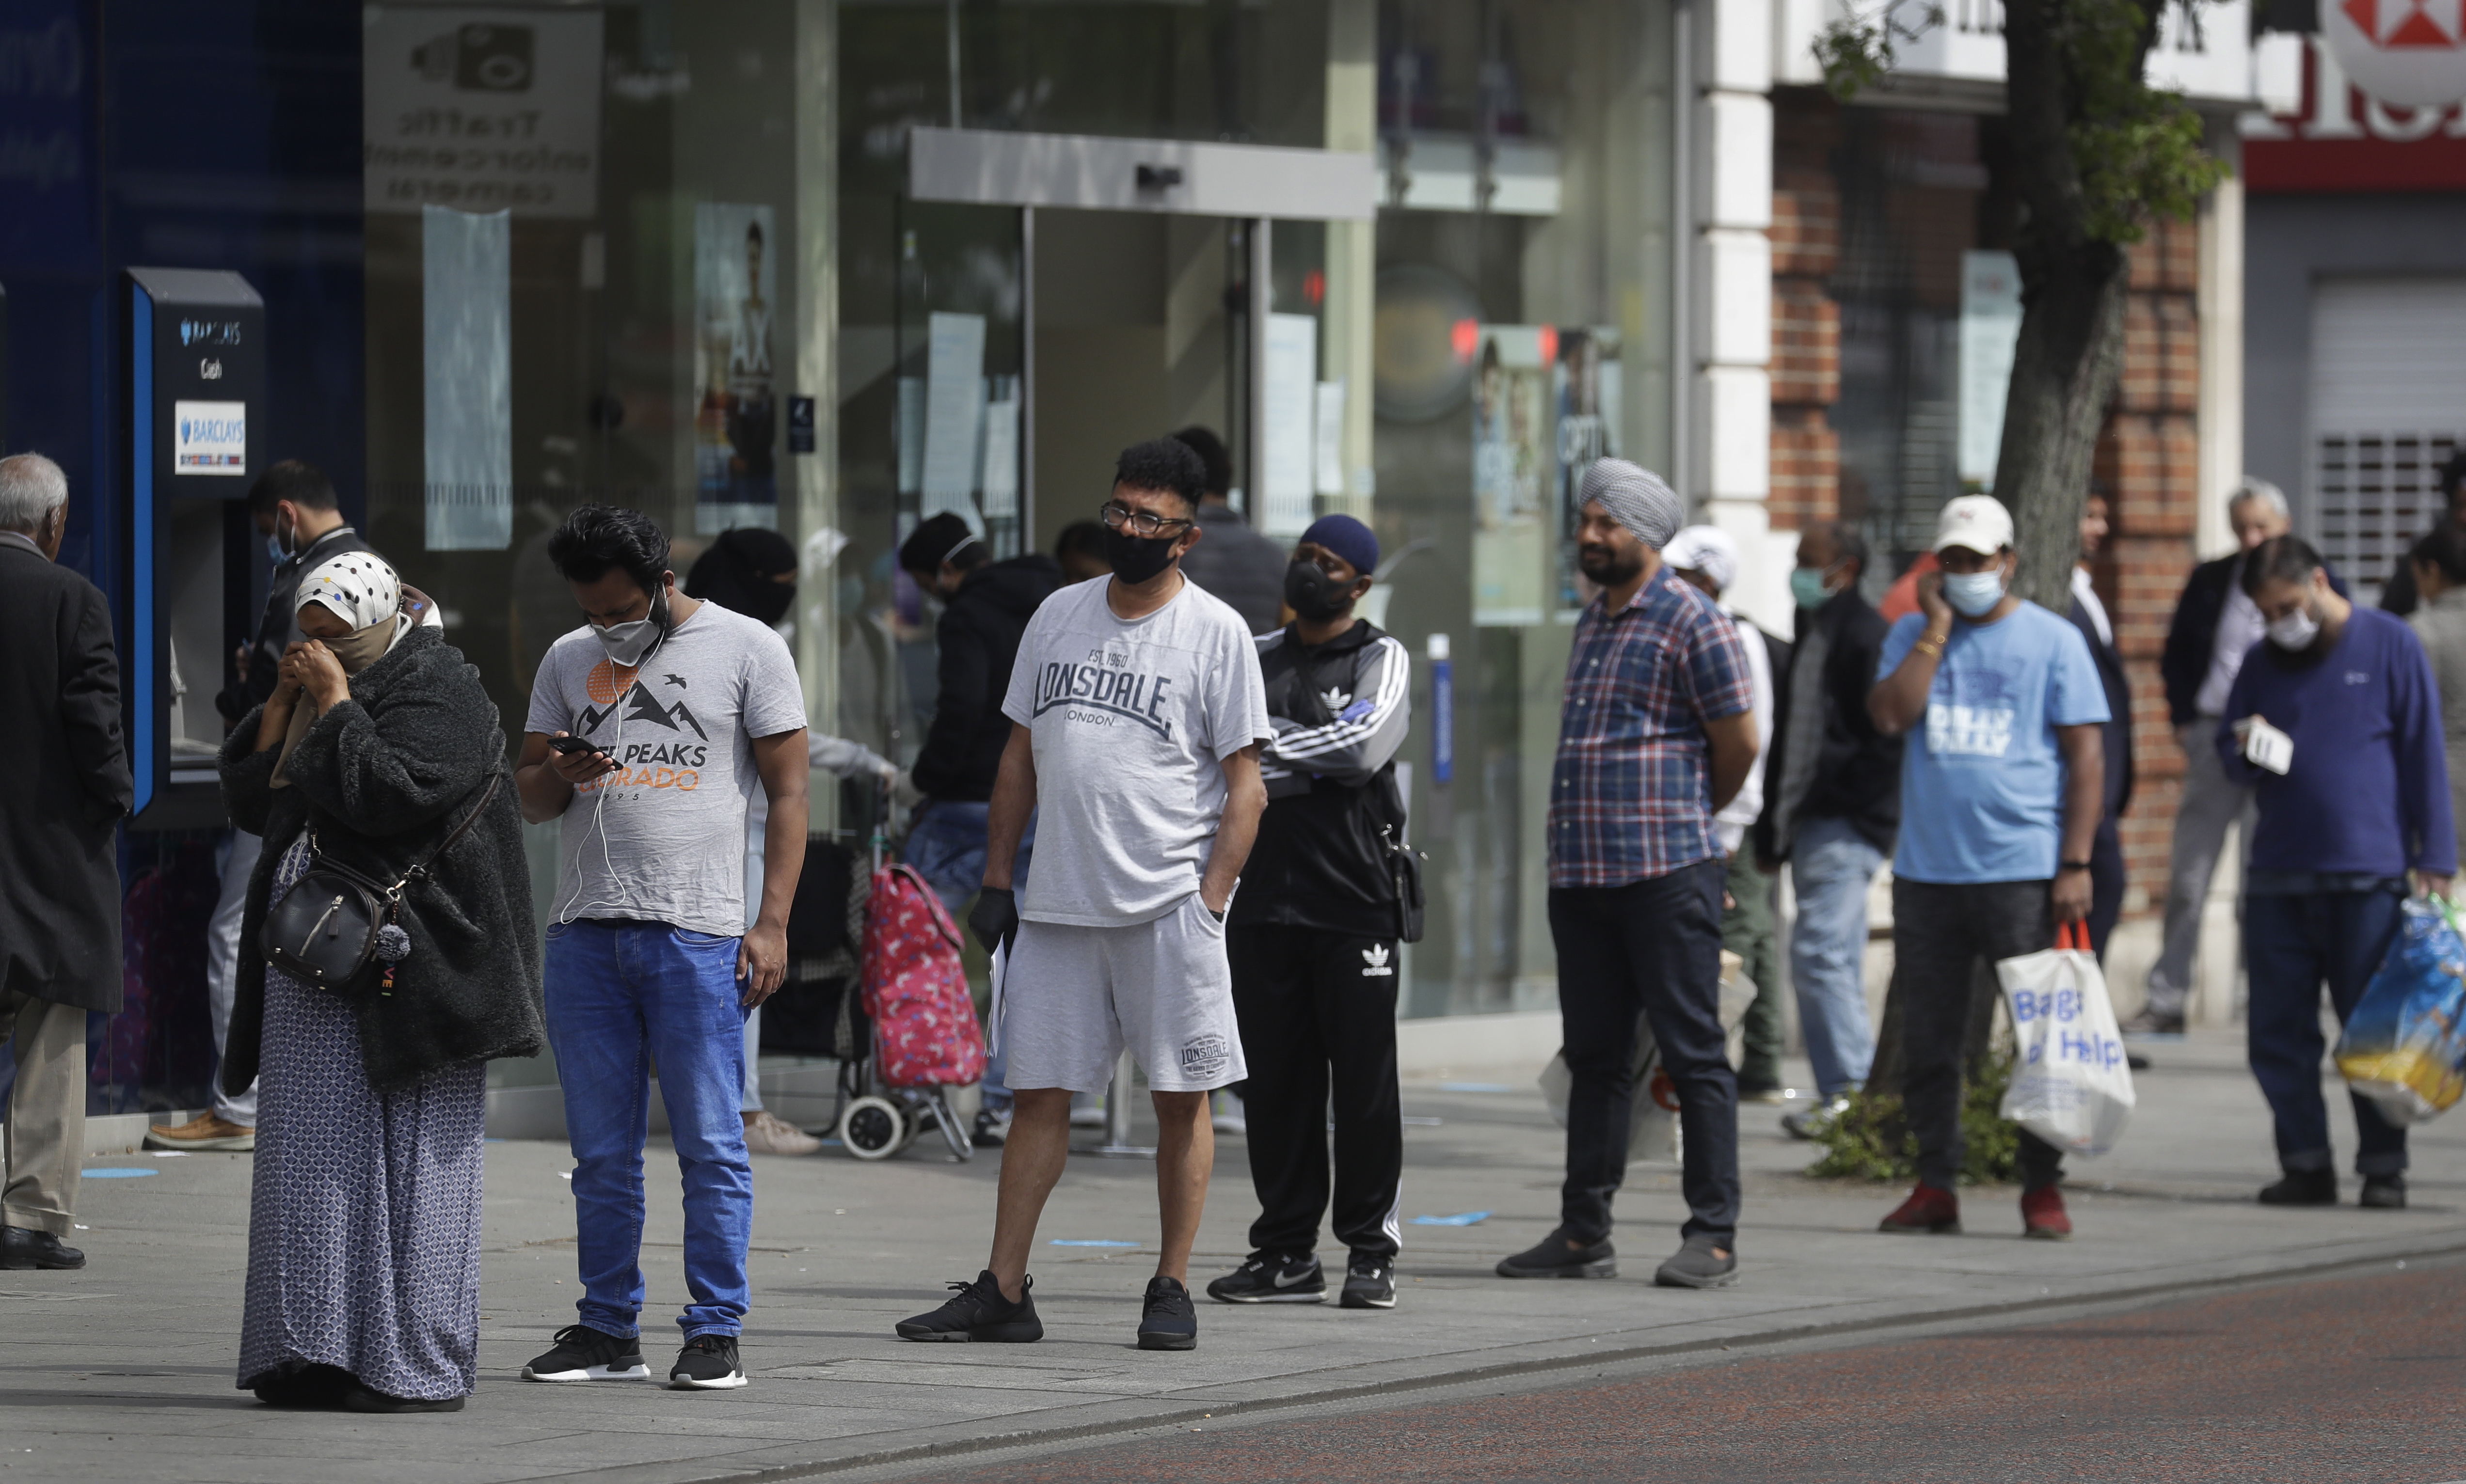 People social distance as they queue to enter a shop on a high street, as the country continues its lockdown to help curb the spread of the virus, in London, Monday, April 27, 2020. While Britain is still in lockdown, some nations have begun gradually easing coronavirus lockdowns, each pursuing its own approach but all with a common goal in mind, restarting their economies without triggering a new wave of infections. (AP Photo/Kirsty Wigglesworth)